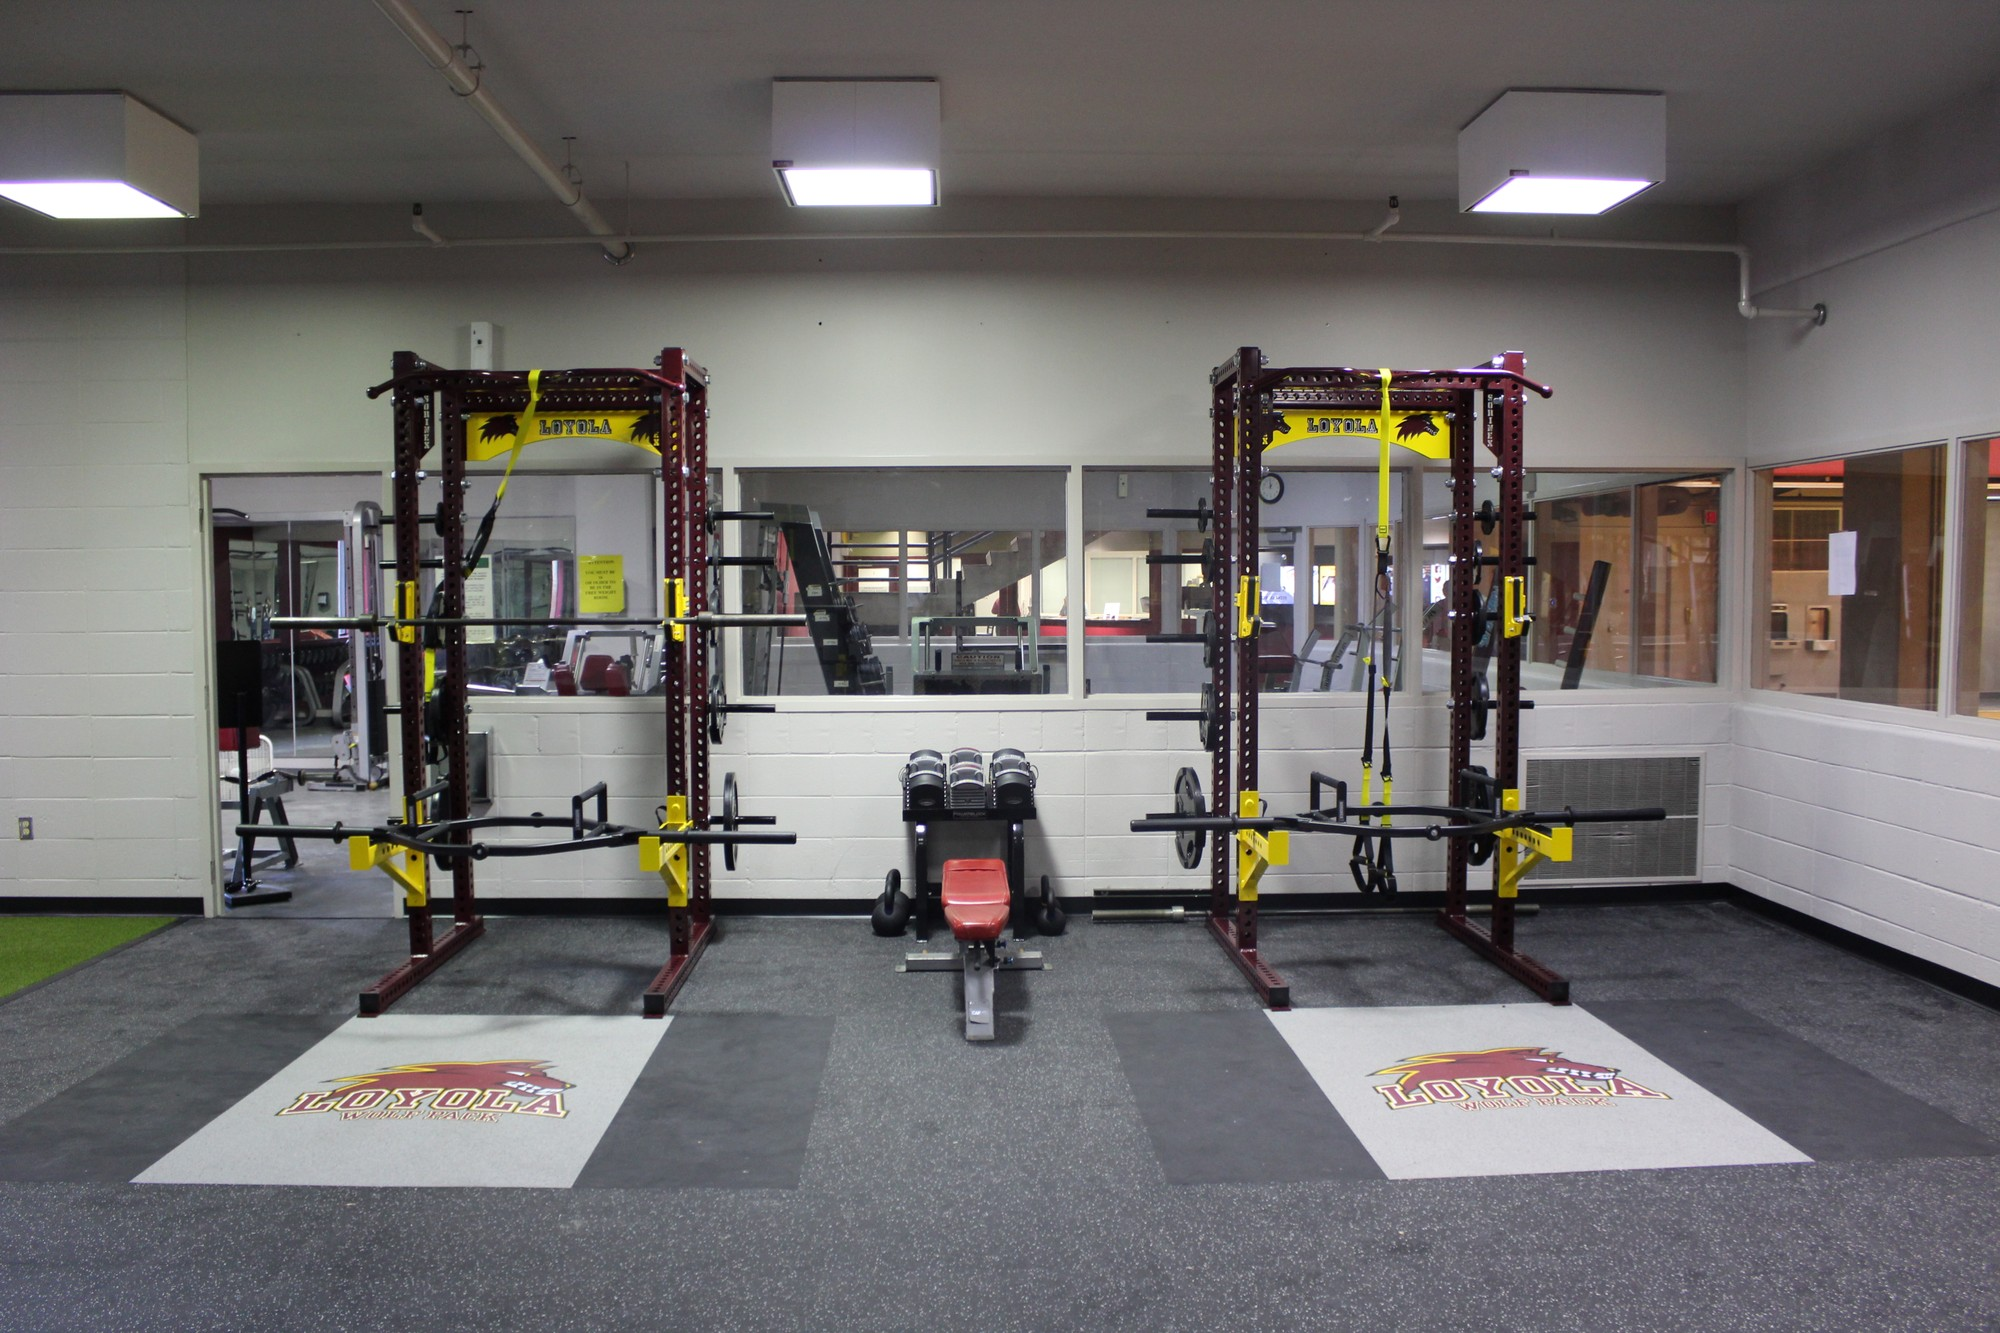 Loyola weight room users hit the gym heavy with new advanced squat machines and other safer, much improved equipment. The renovations began at the end of last semester and were expected to be complete by Feb. 7, but the athletic department officially re-opened its doors to all the sweat seekers a week behind schedule. Photo credit: Tristan Emmons